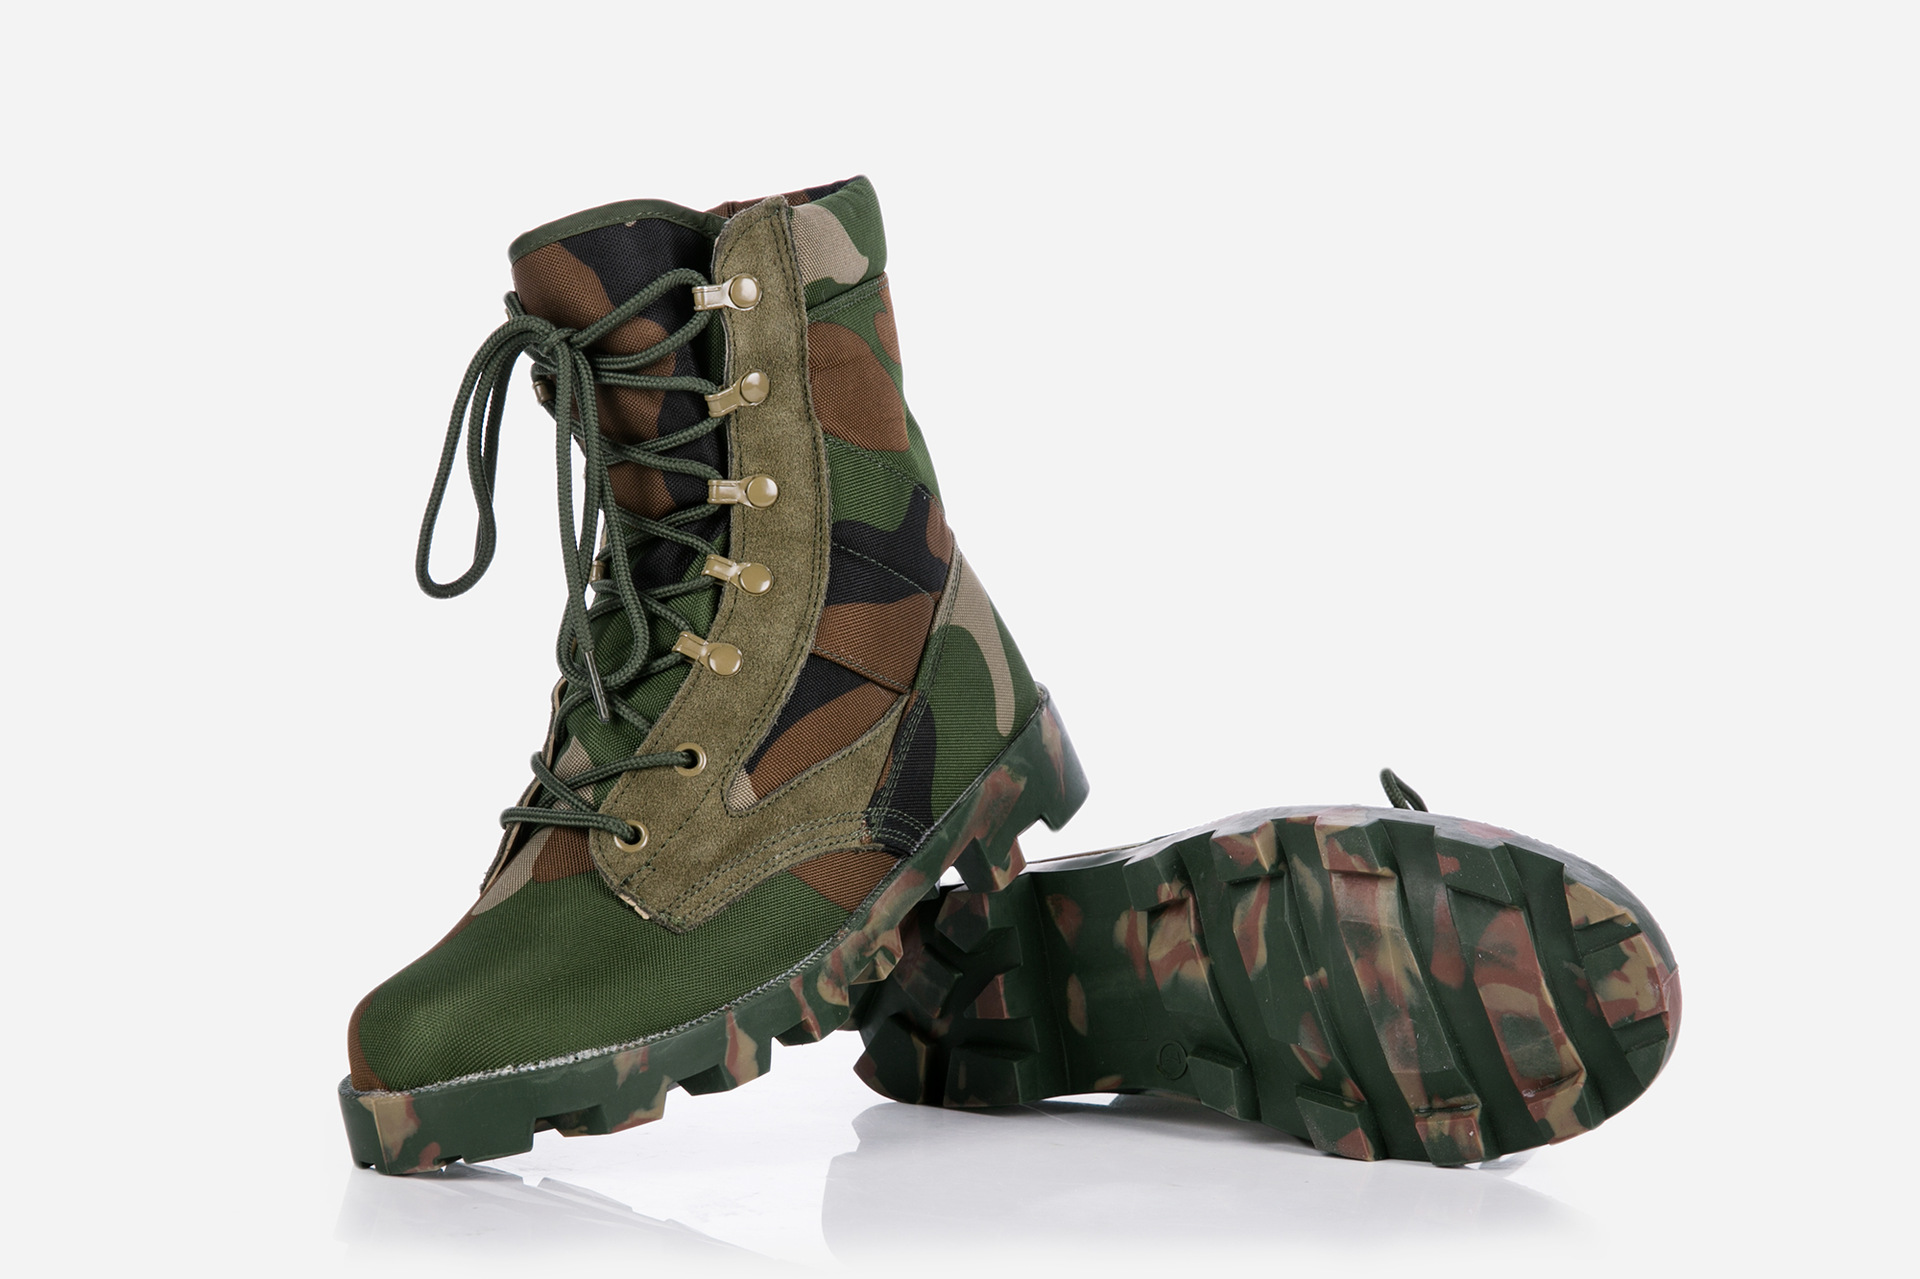 Foreign Trade Combat Boots A Wave Combat Boots Desert Boots Hight-top Outdoor Tactical Boots Special Forces 07 Outdoor Training